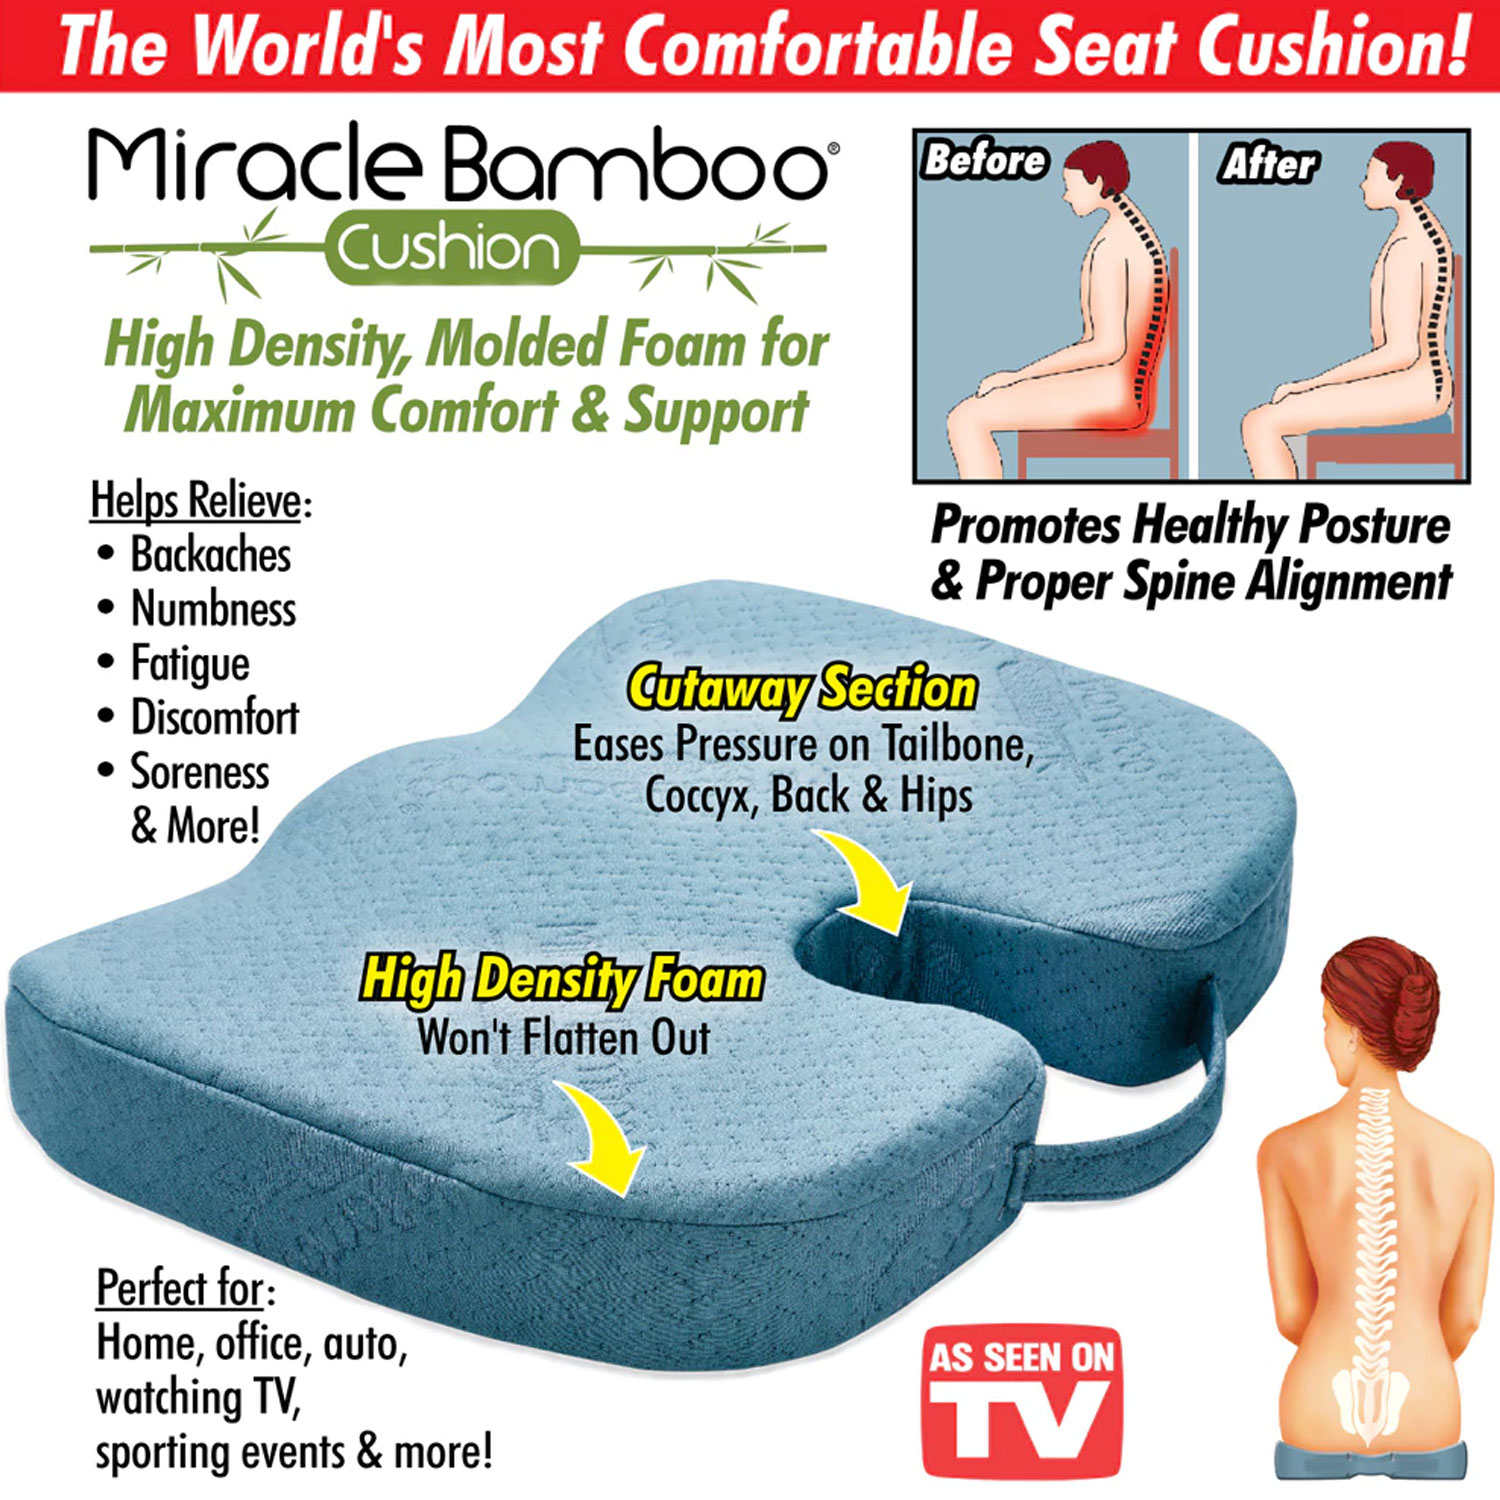 Miracle Bamboo Cushion Orthopedic Seat Cushion - Alphabet Deal Miracle Bamboo Cushion Orthopedic Seat Cushion